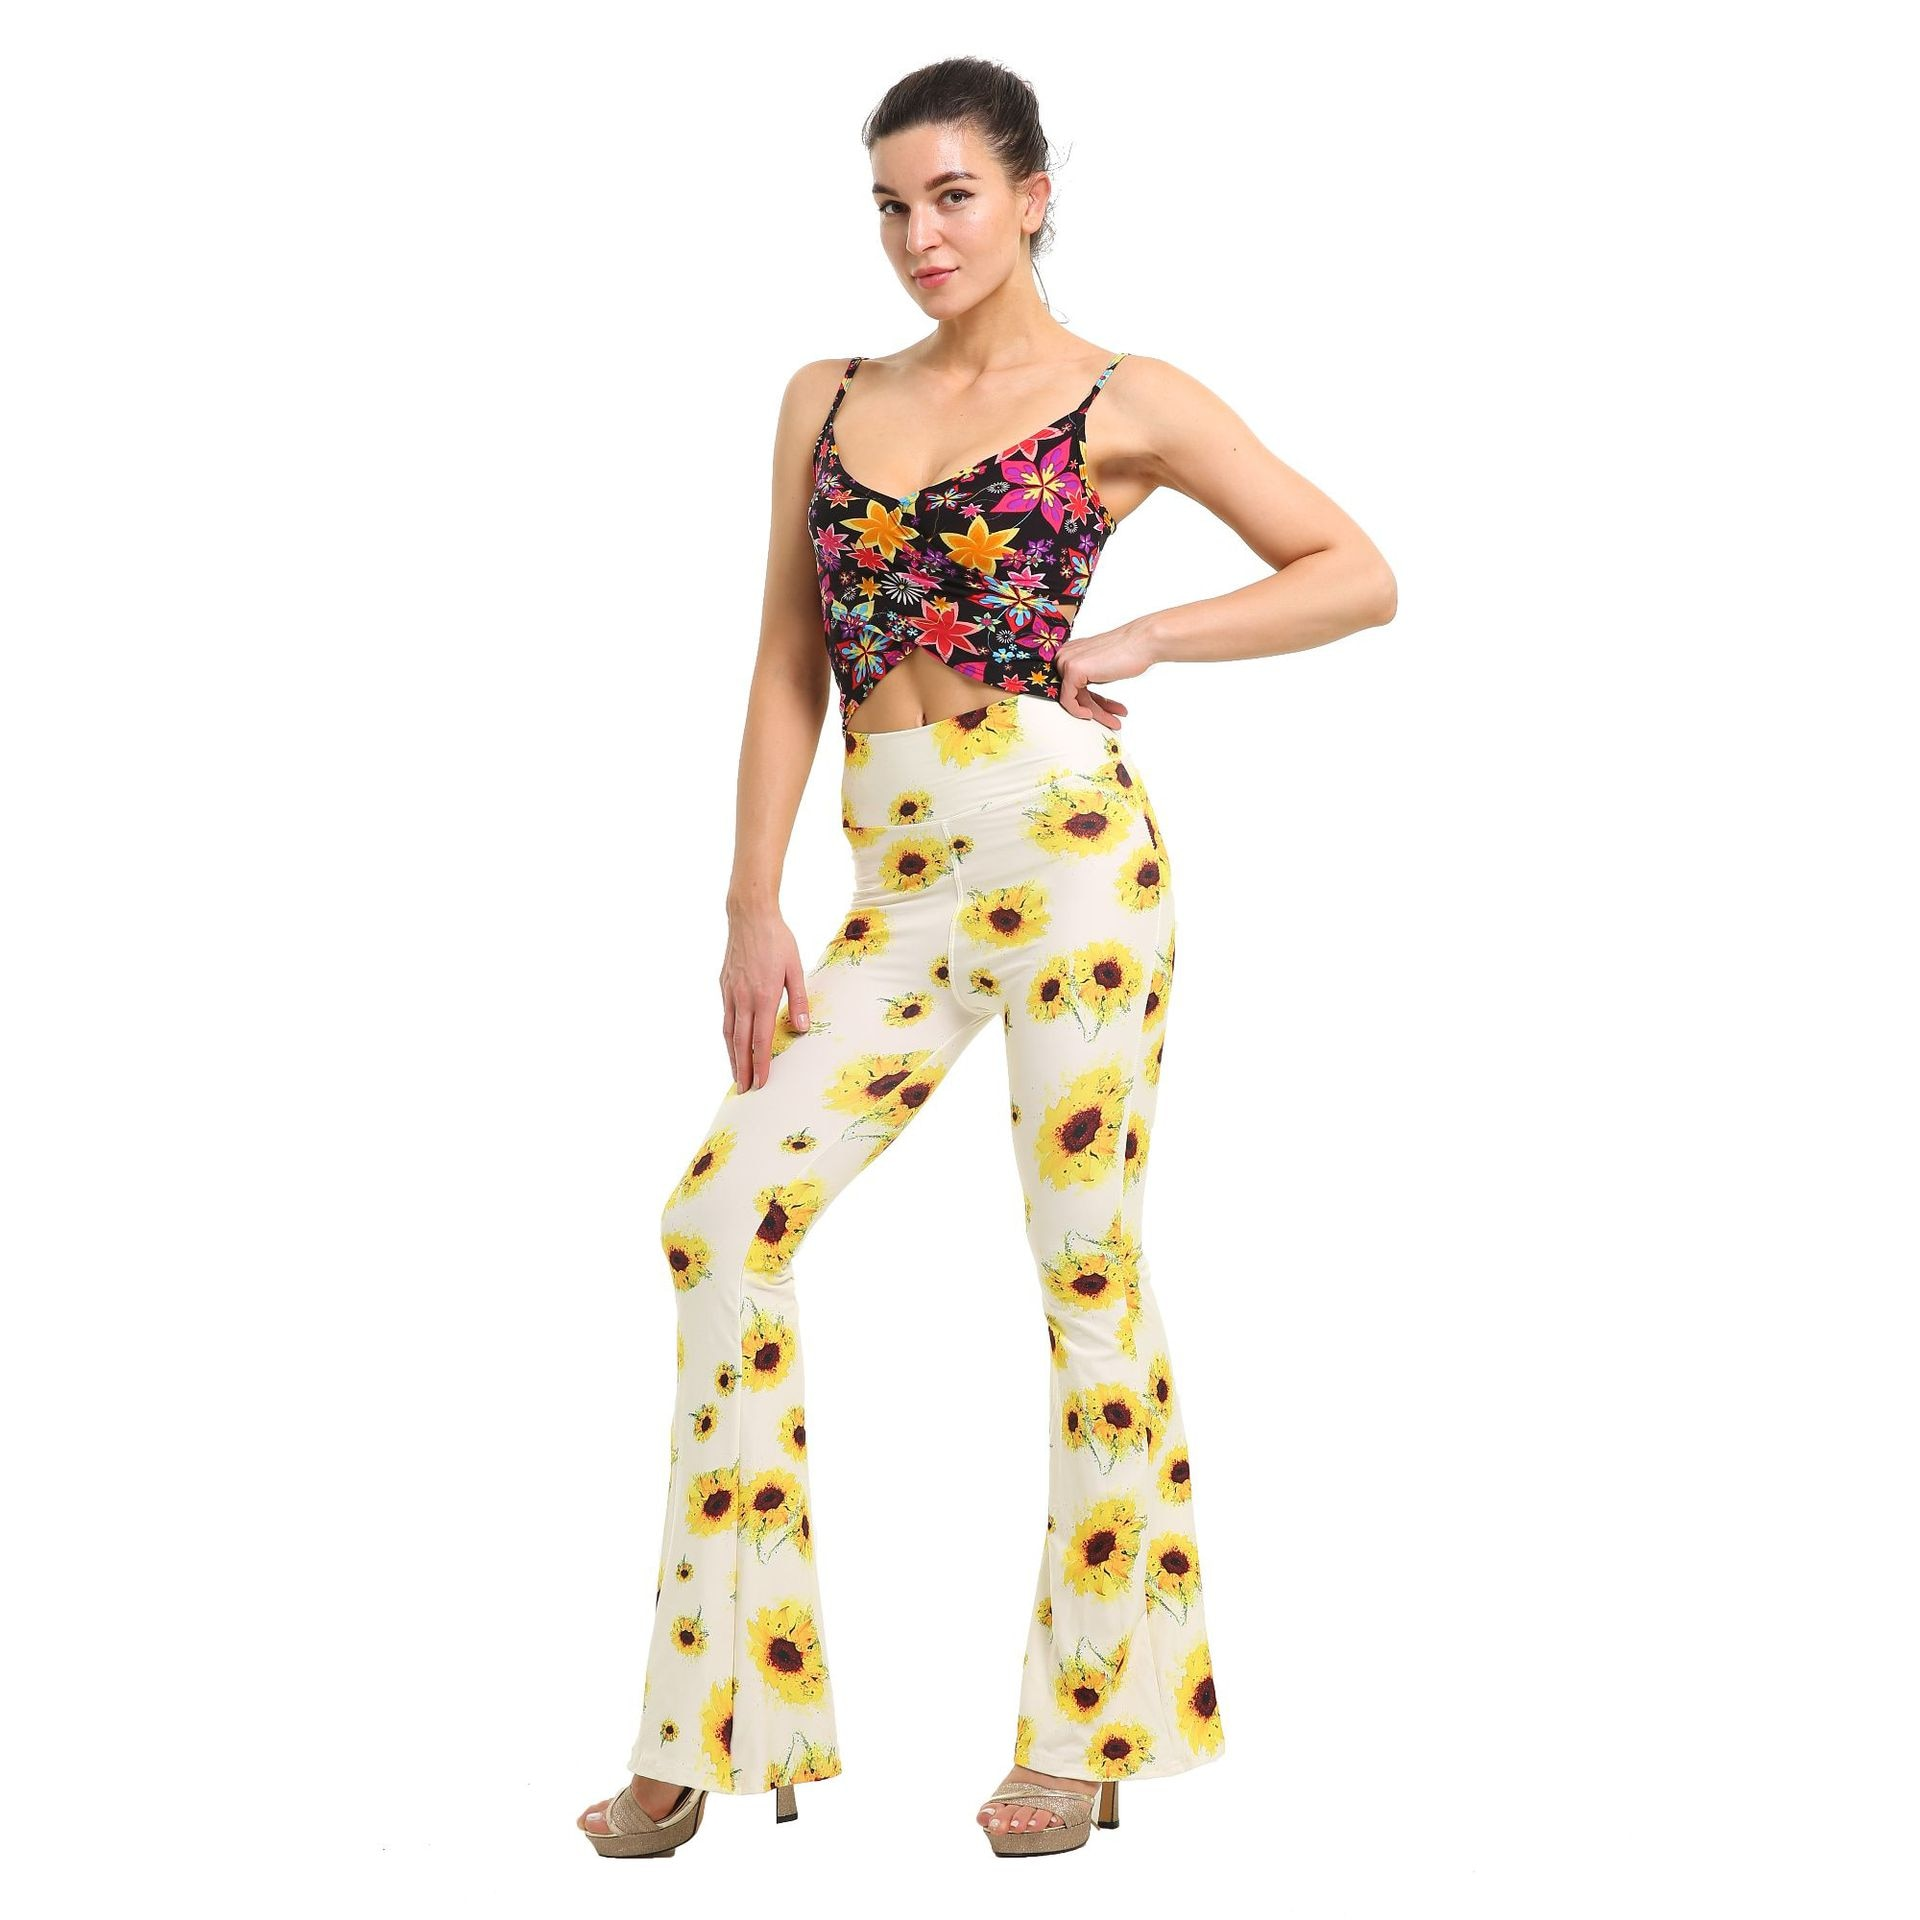 Tight-fitting Printed Bell-bottom Pants Women's High Waist Trousers Casual Stretch Thin Flared Pants